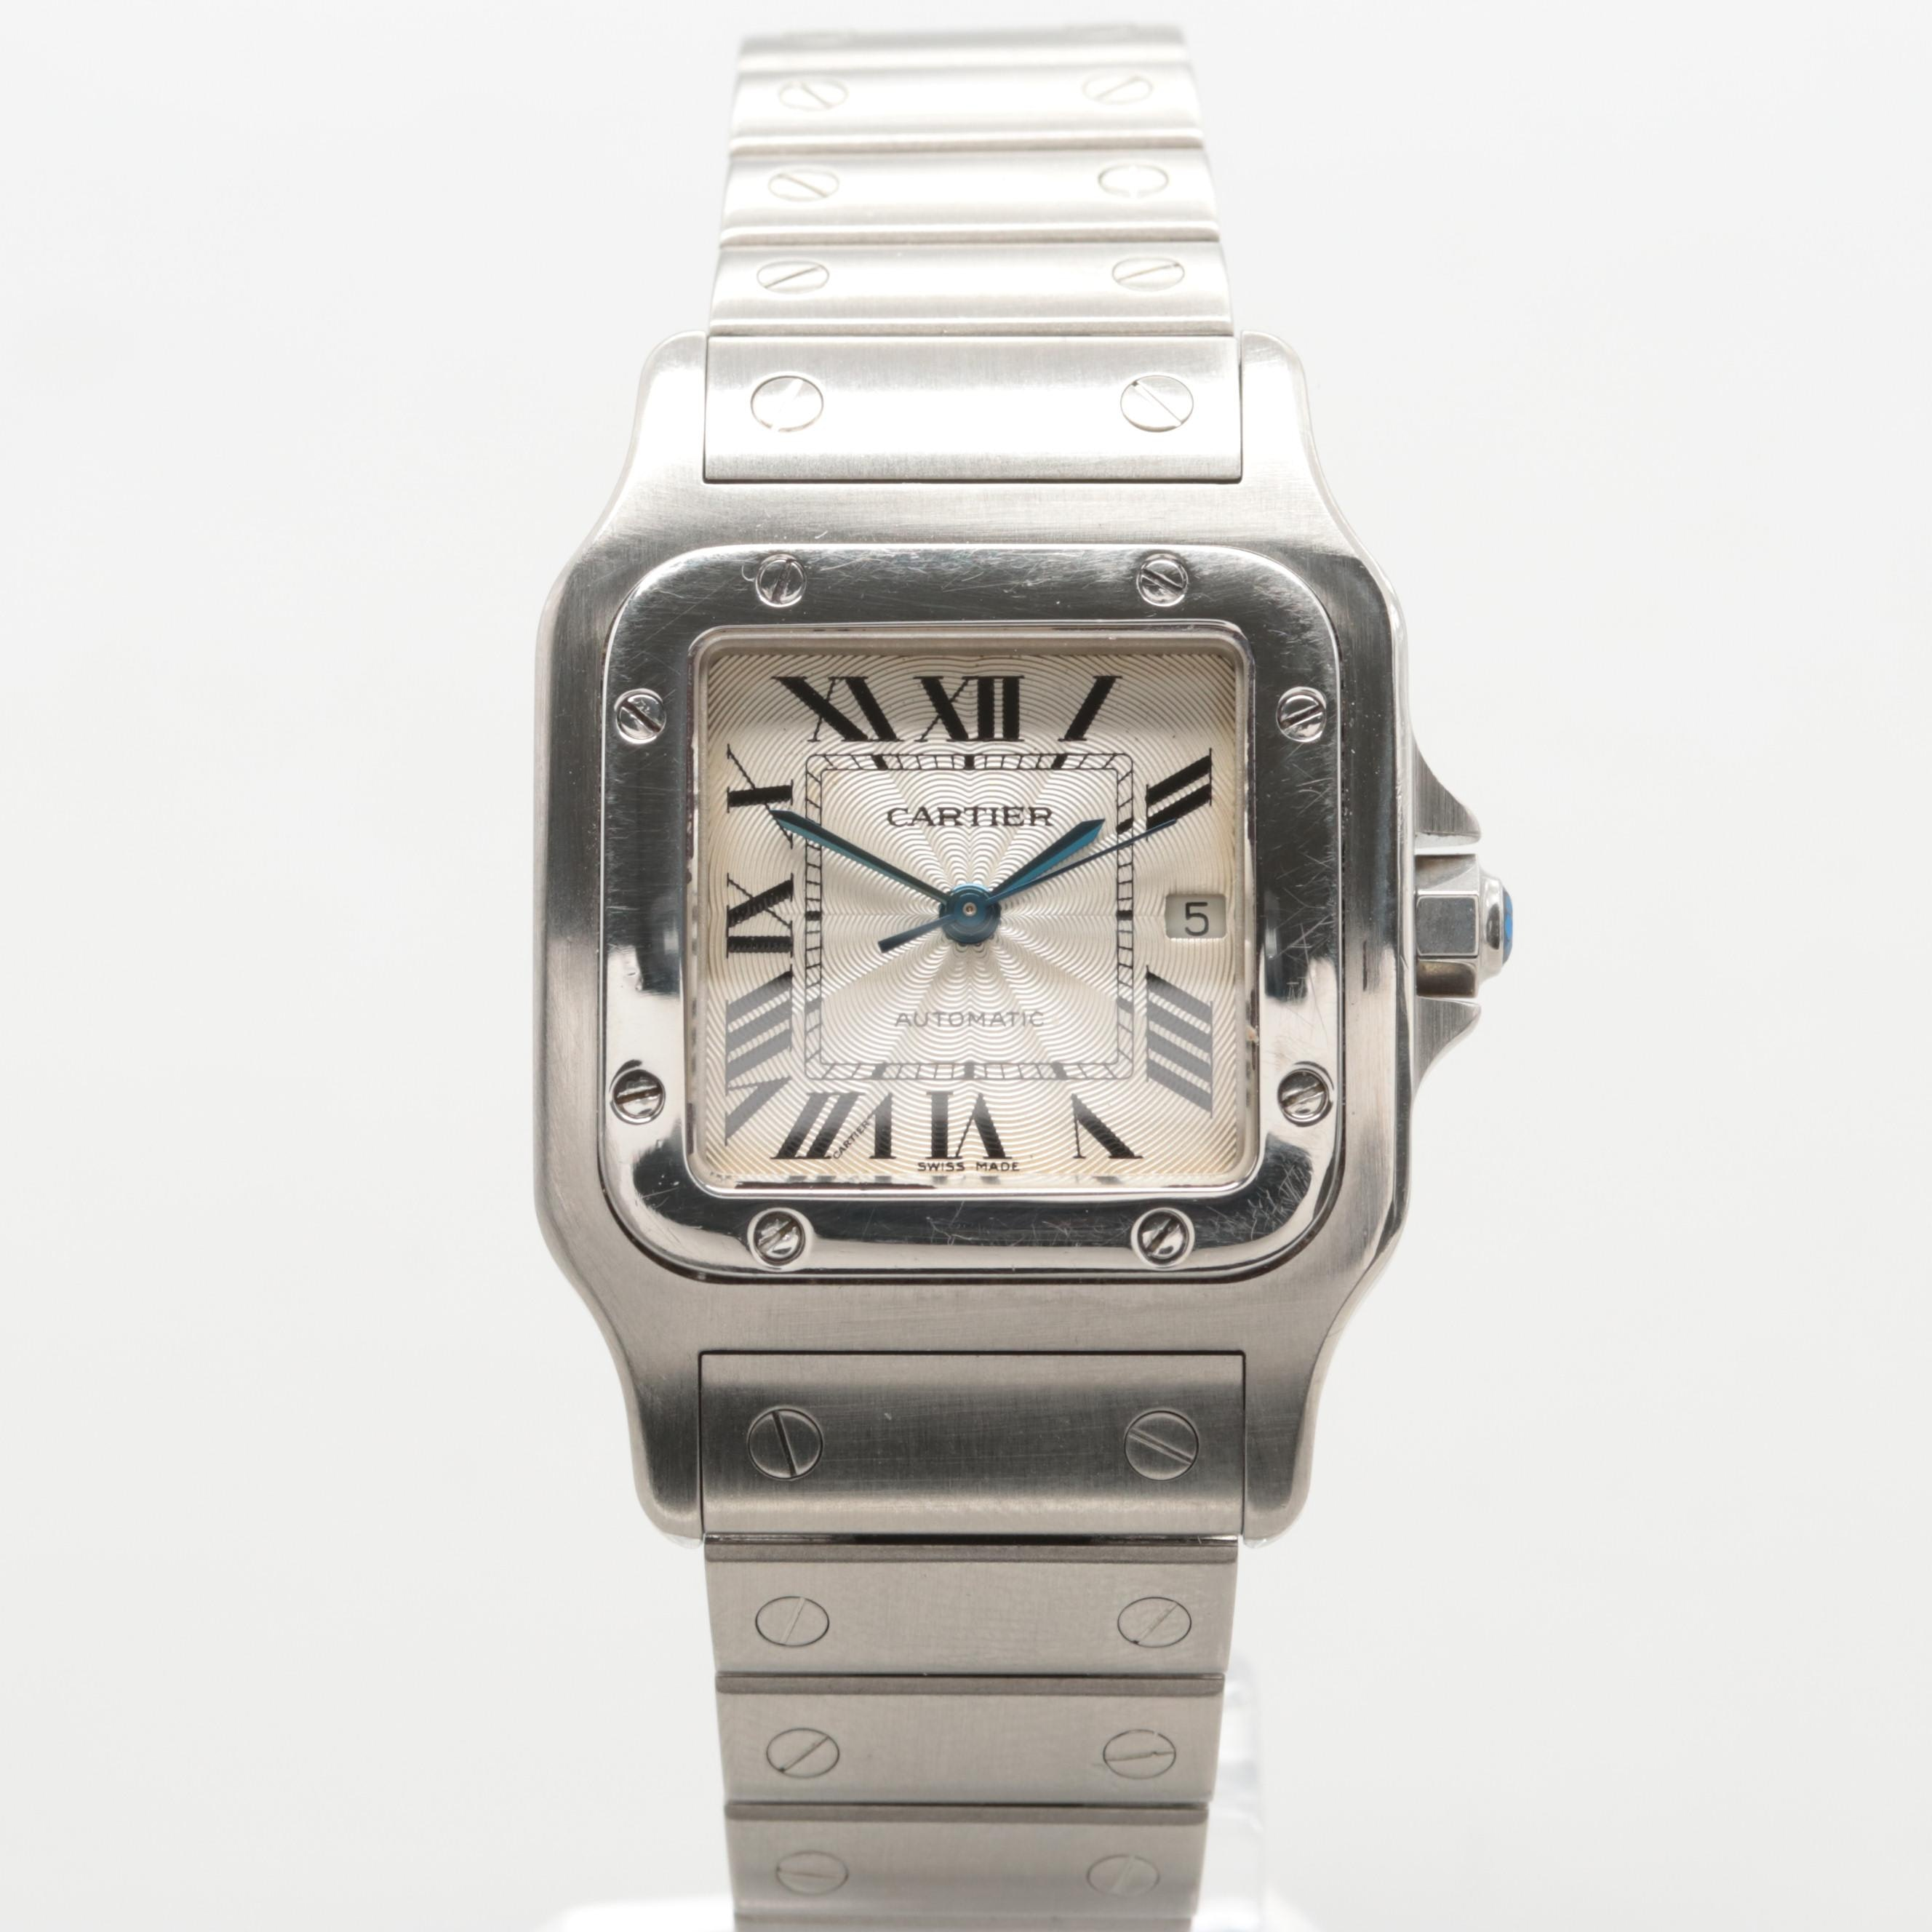 Cartier Santos Galbee Stainless Steel Automatic Wristwatch With Date Window